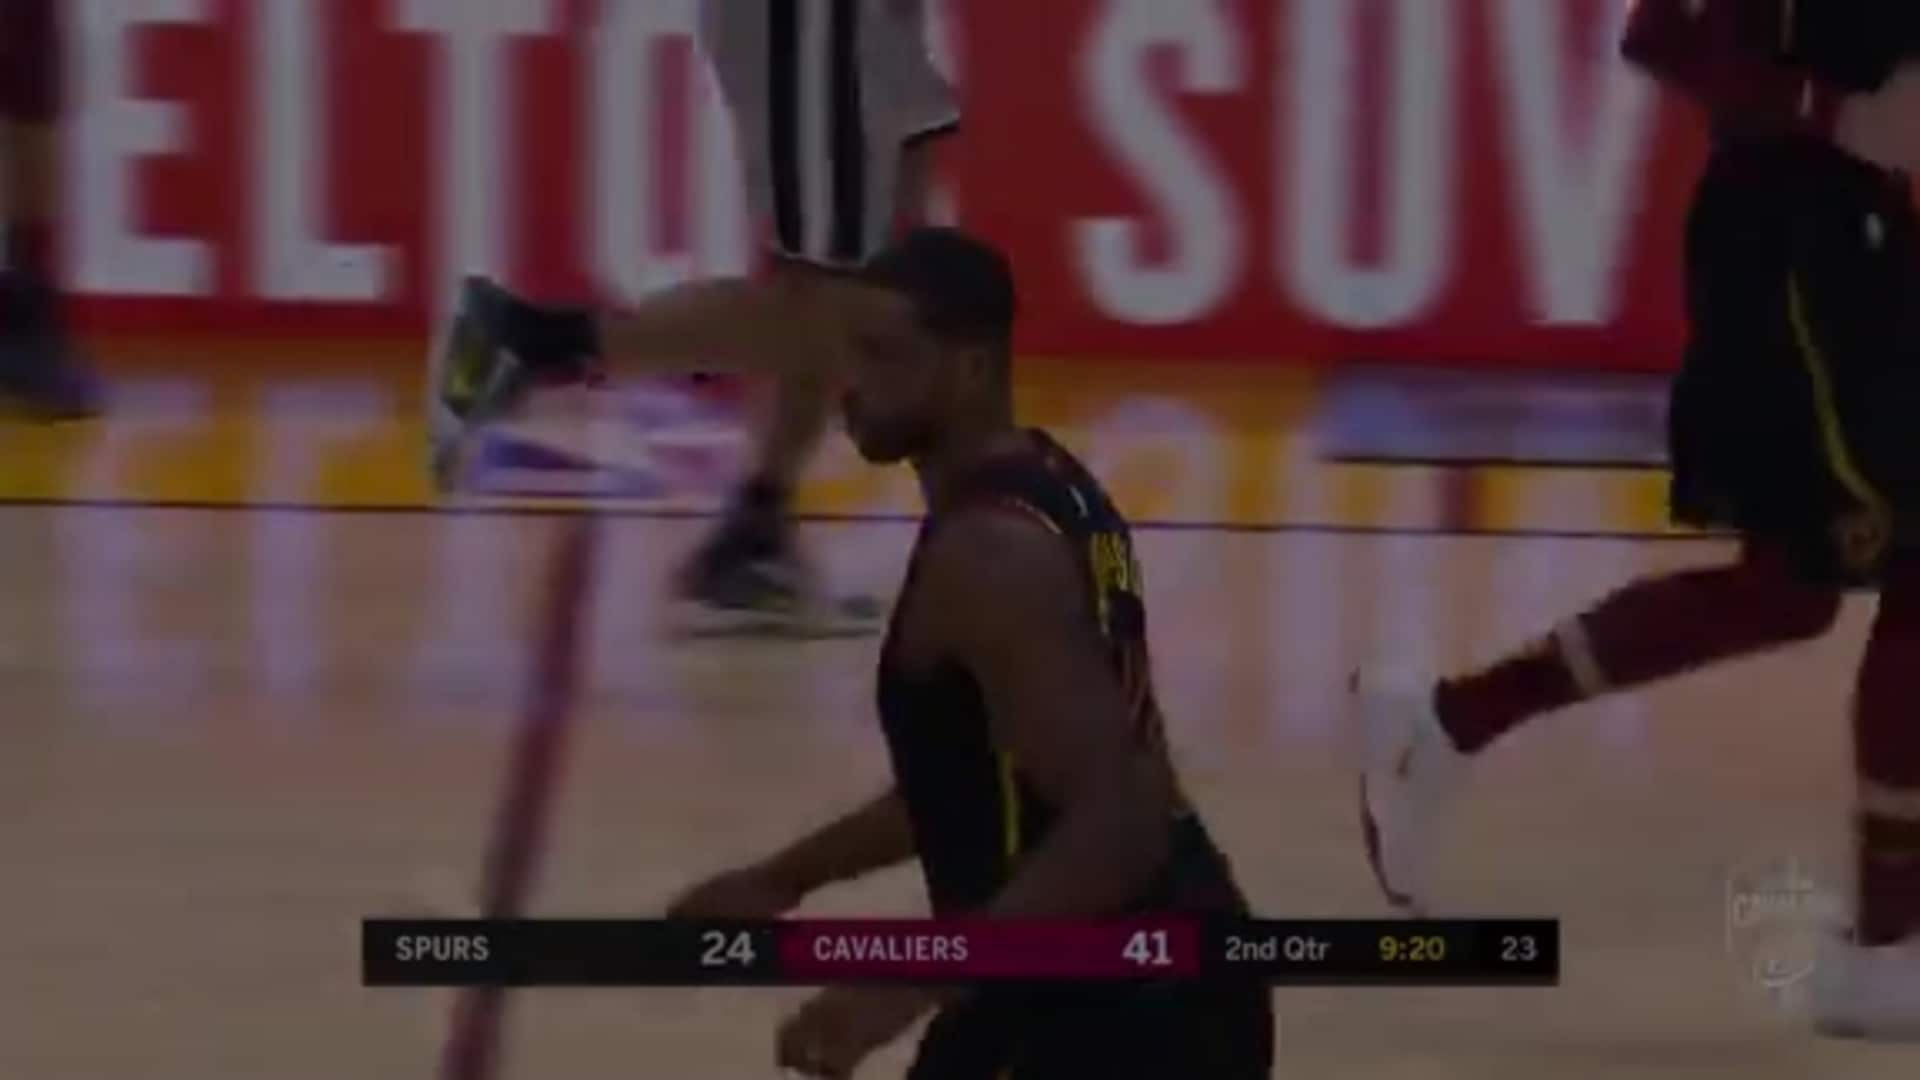 Thompson Spins and Scores Inside